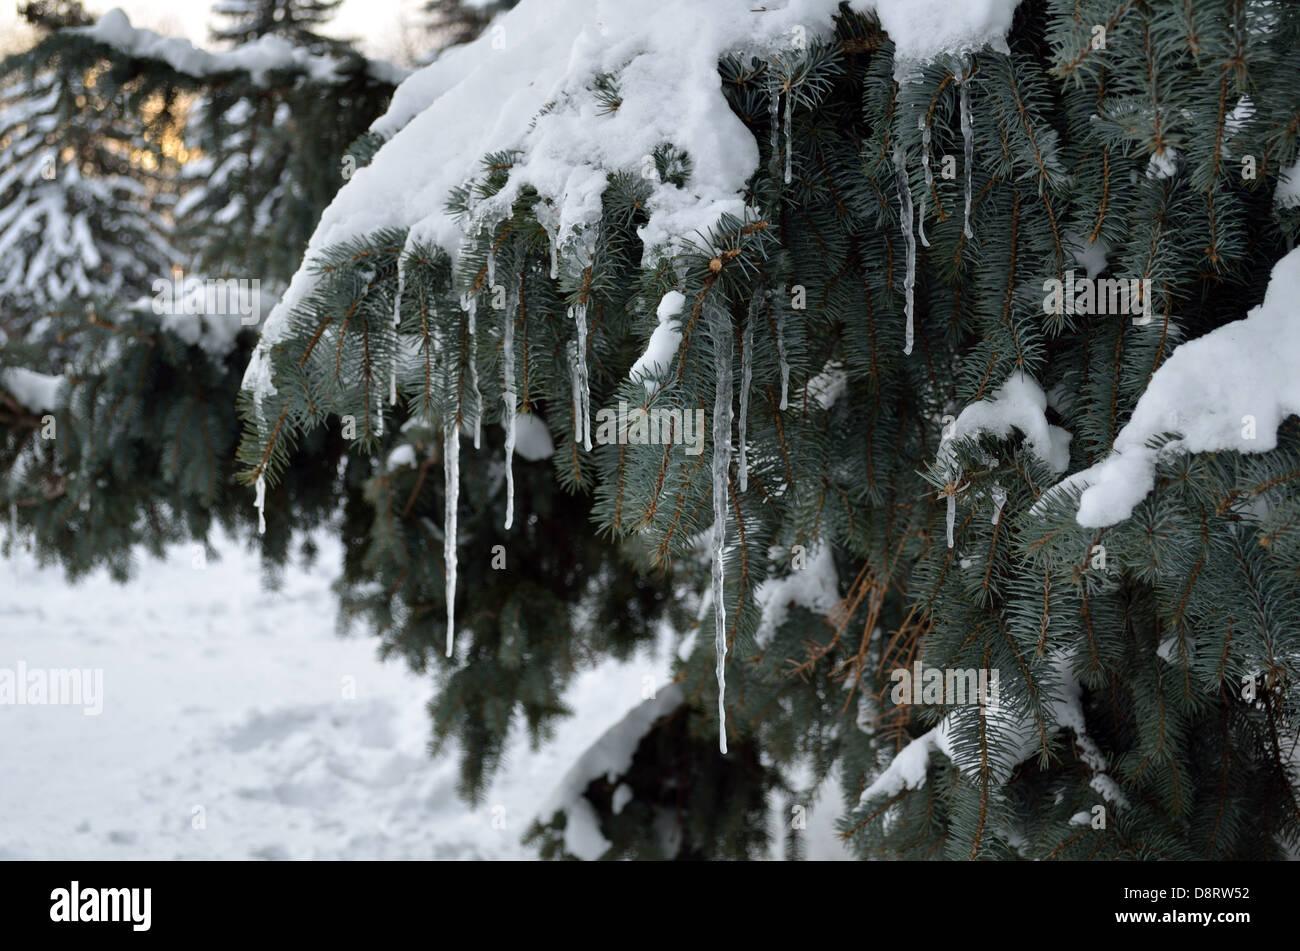 twig tree in snow with icicles - Stock Image